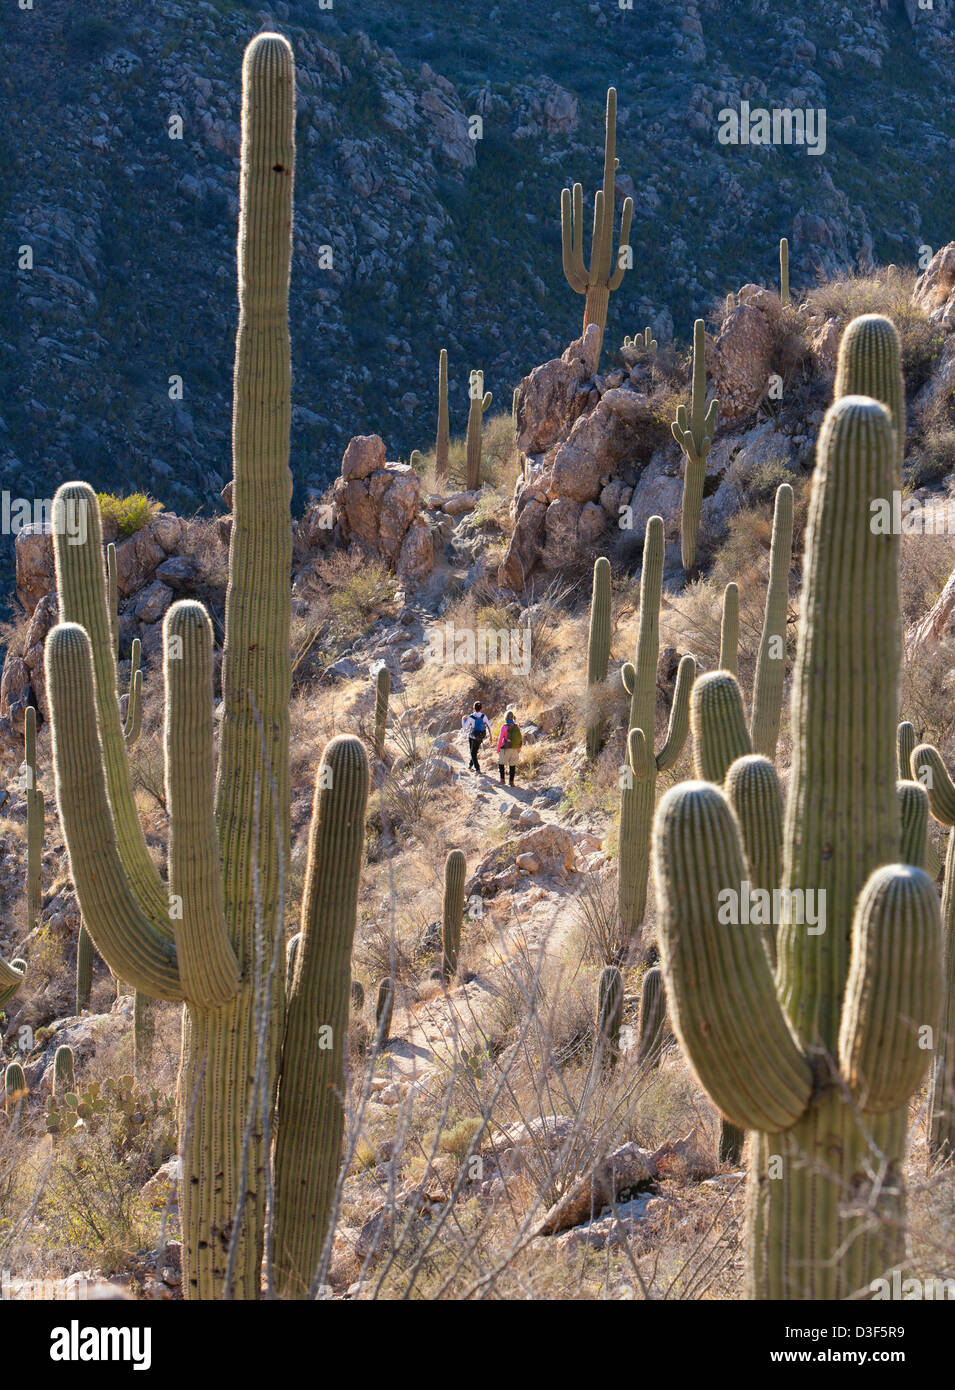 Hikers on a trail in Catalina State Park - Stock Image